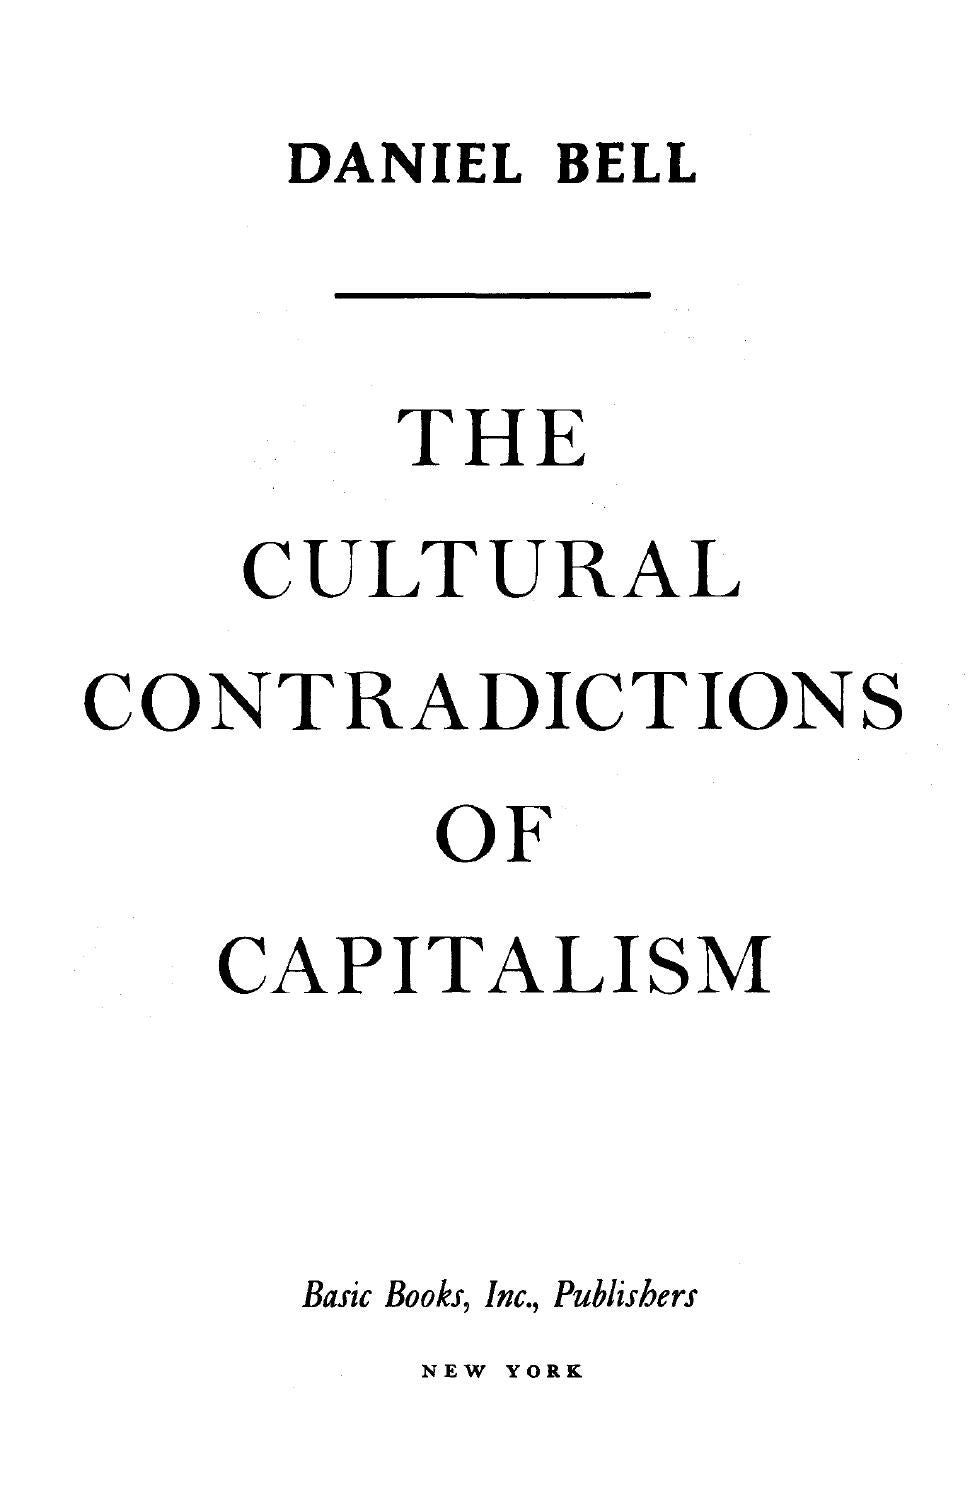 The Cultural Contradictions Of Capitalism De Daniel Bell By Noe